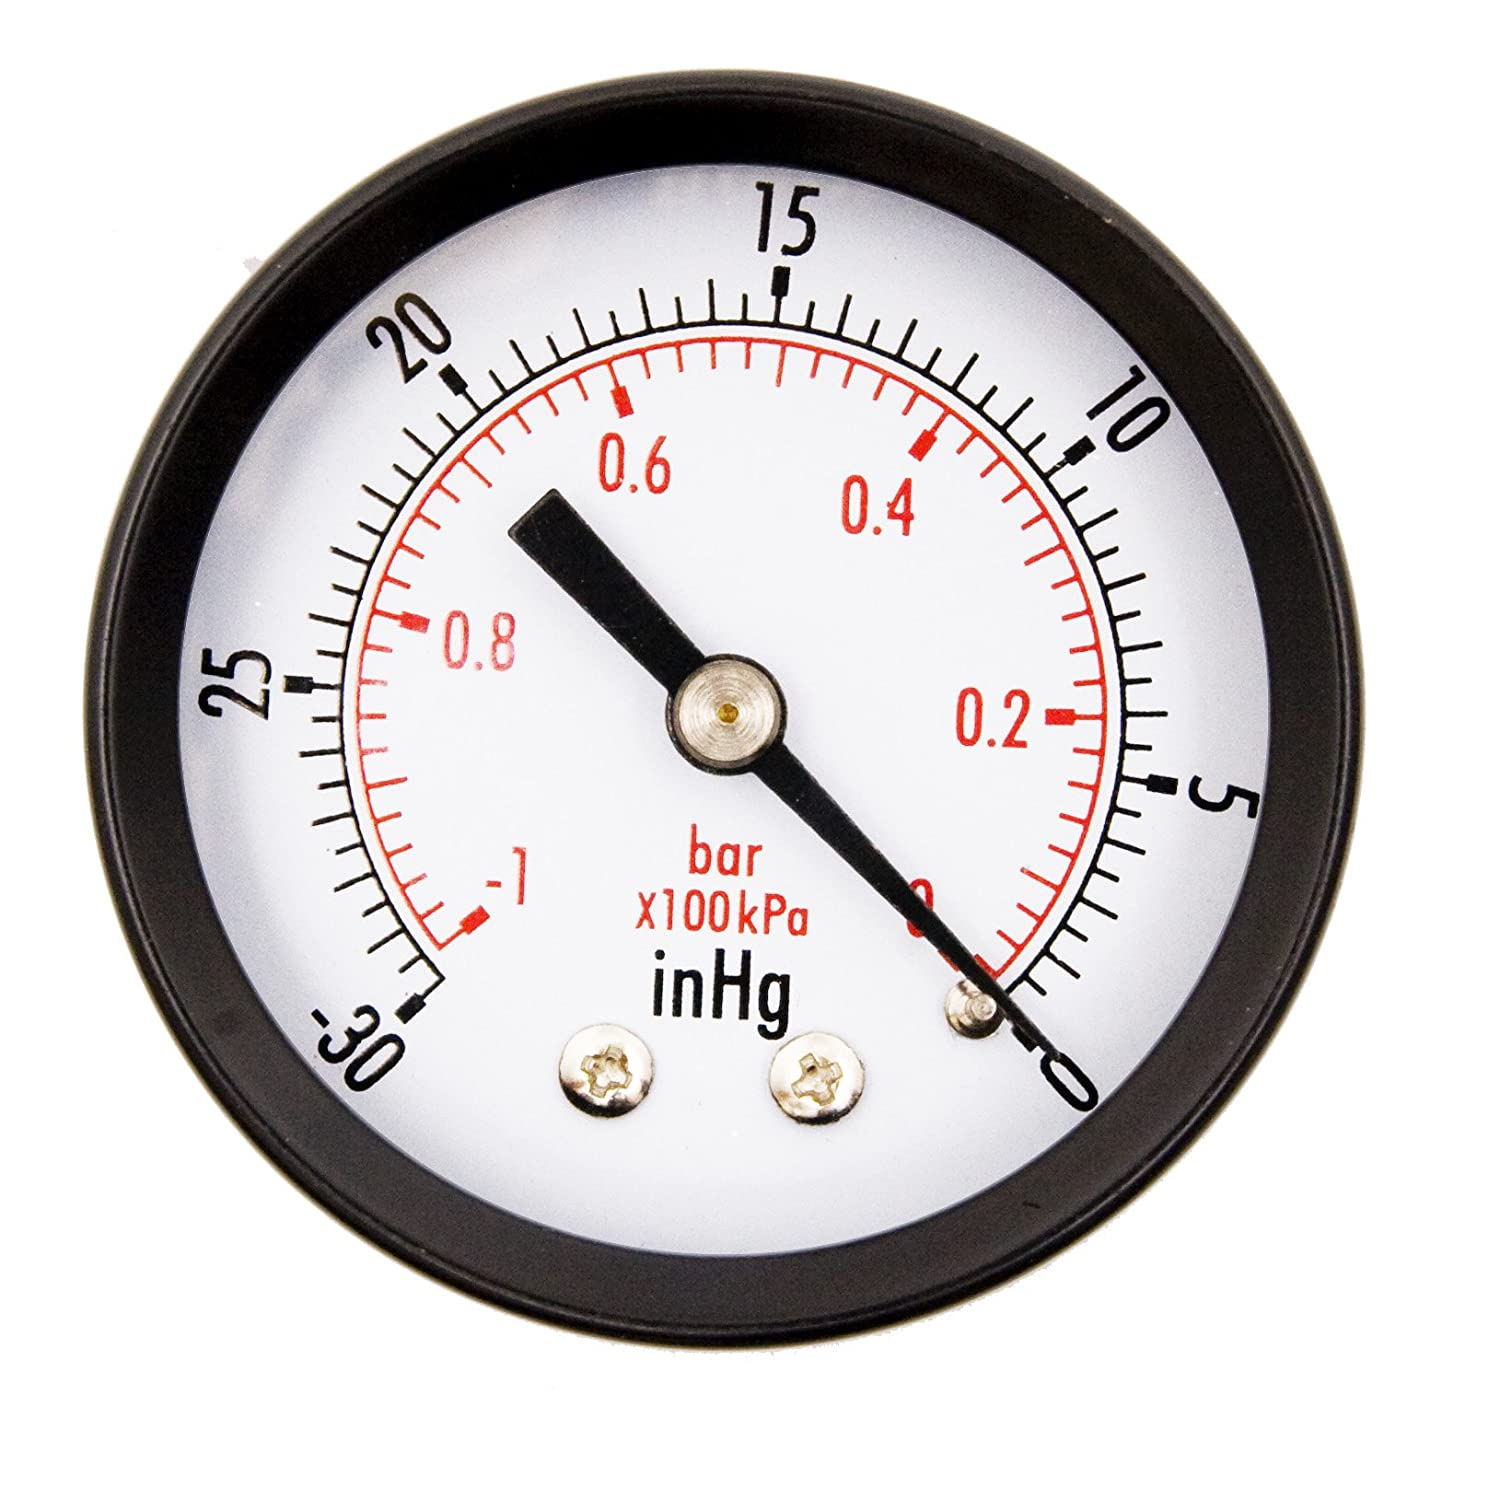 2 Dial Utility Vacuum Pressure Gauge for Air Compressor Water Oil Gas 1 4 NPT Center Back Mount Black Steel Case 30HG 0PSI